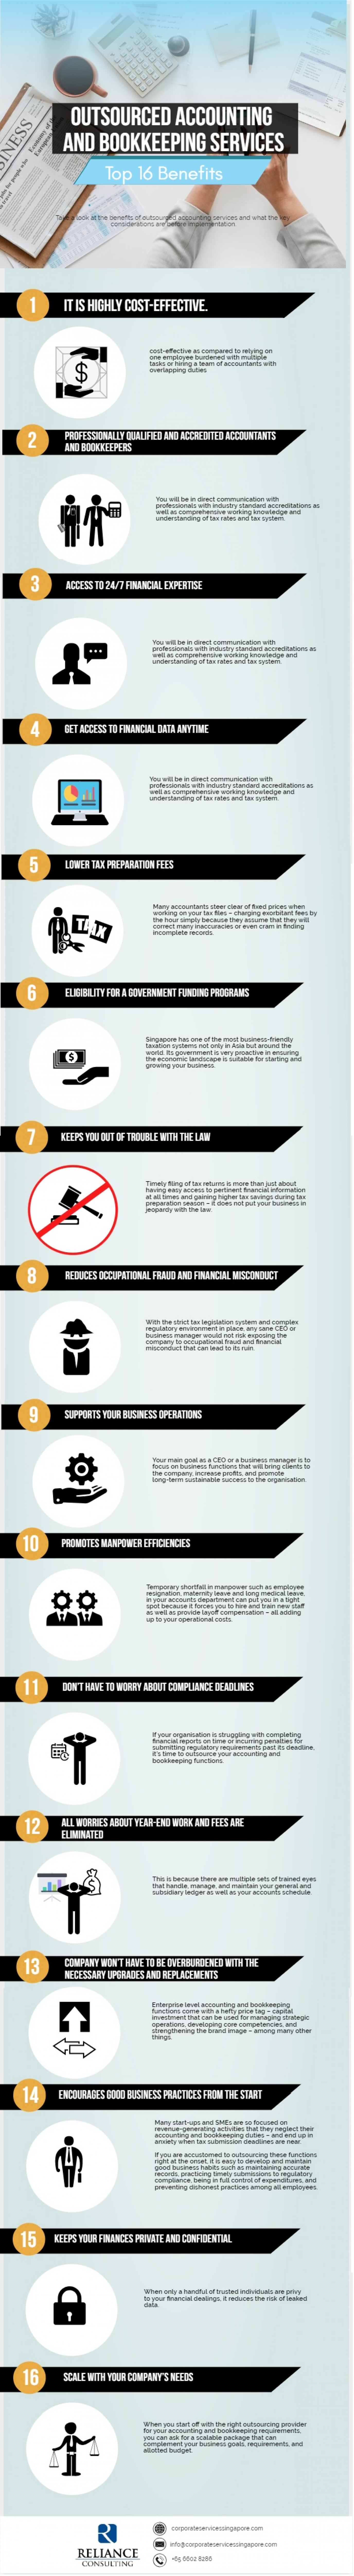 16 Benefits Of Engaging Outsourced Accounting And Bookkeeping Services Infographic